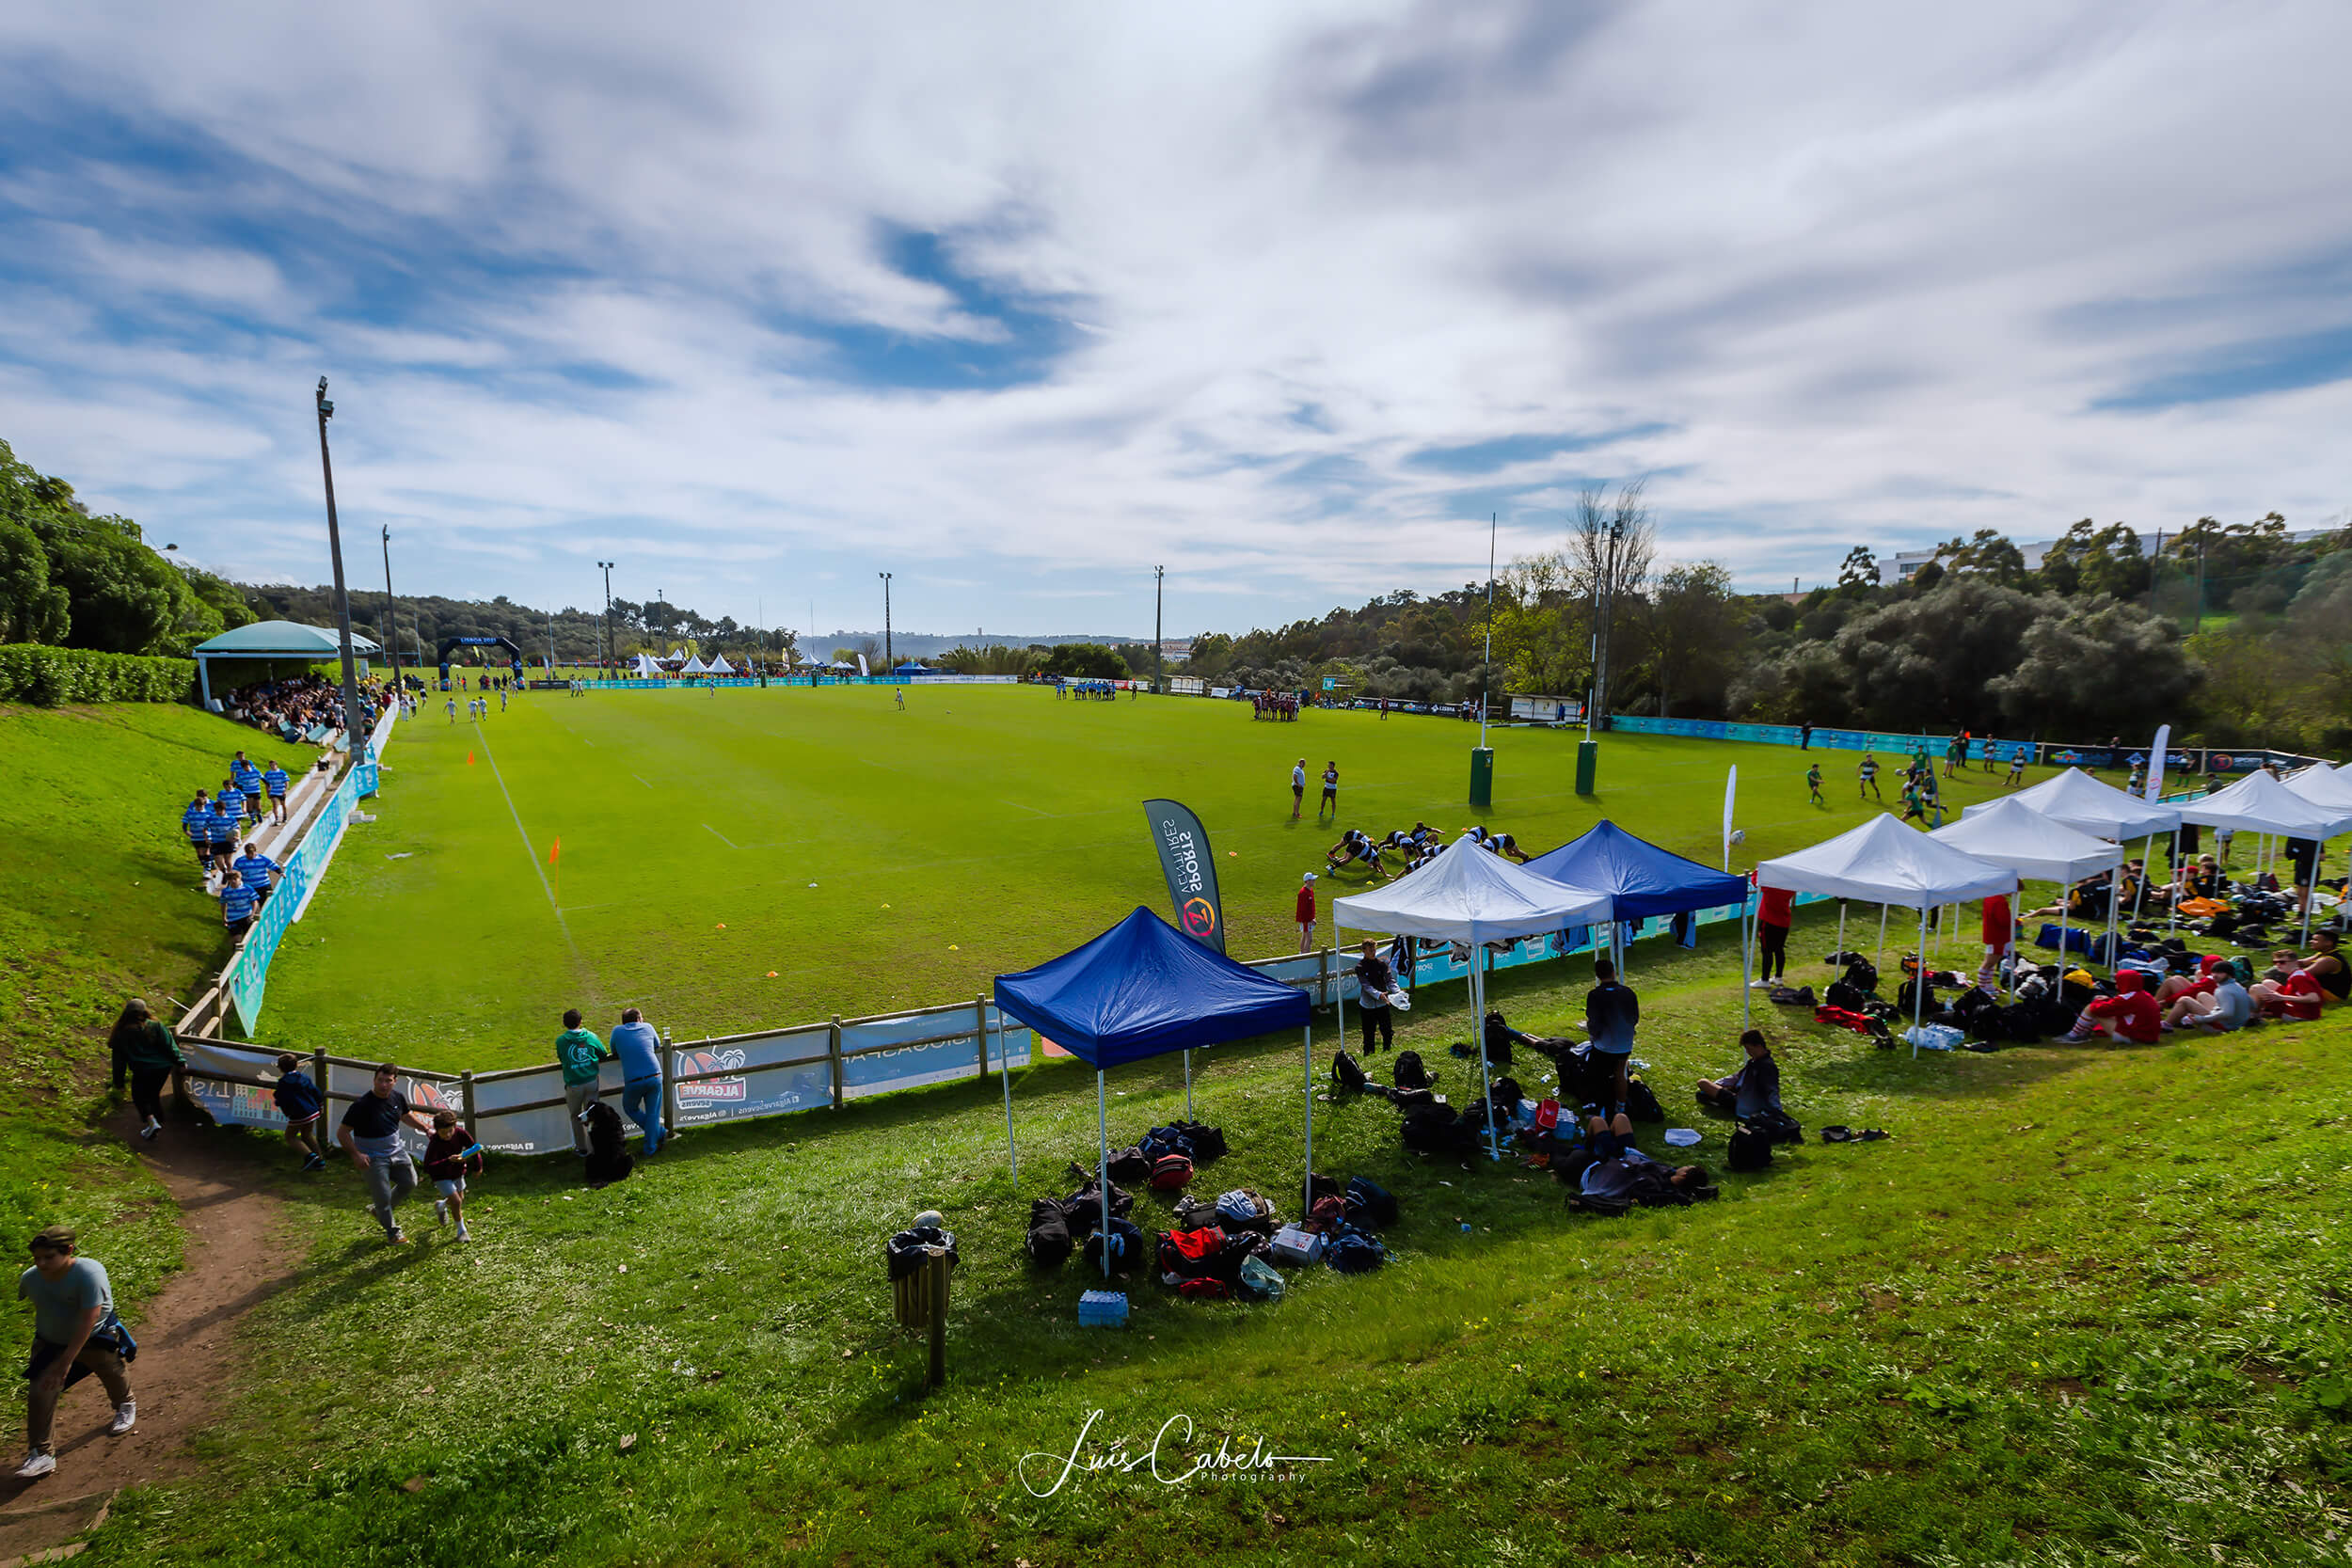 Junio-7s-Lisbon-Youth-Rugby-Sevens-Portugal-02